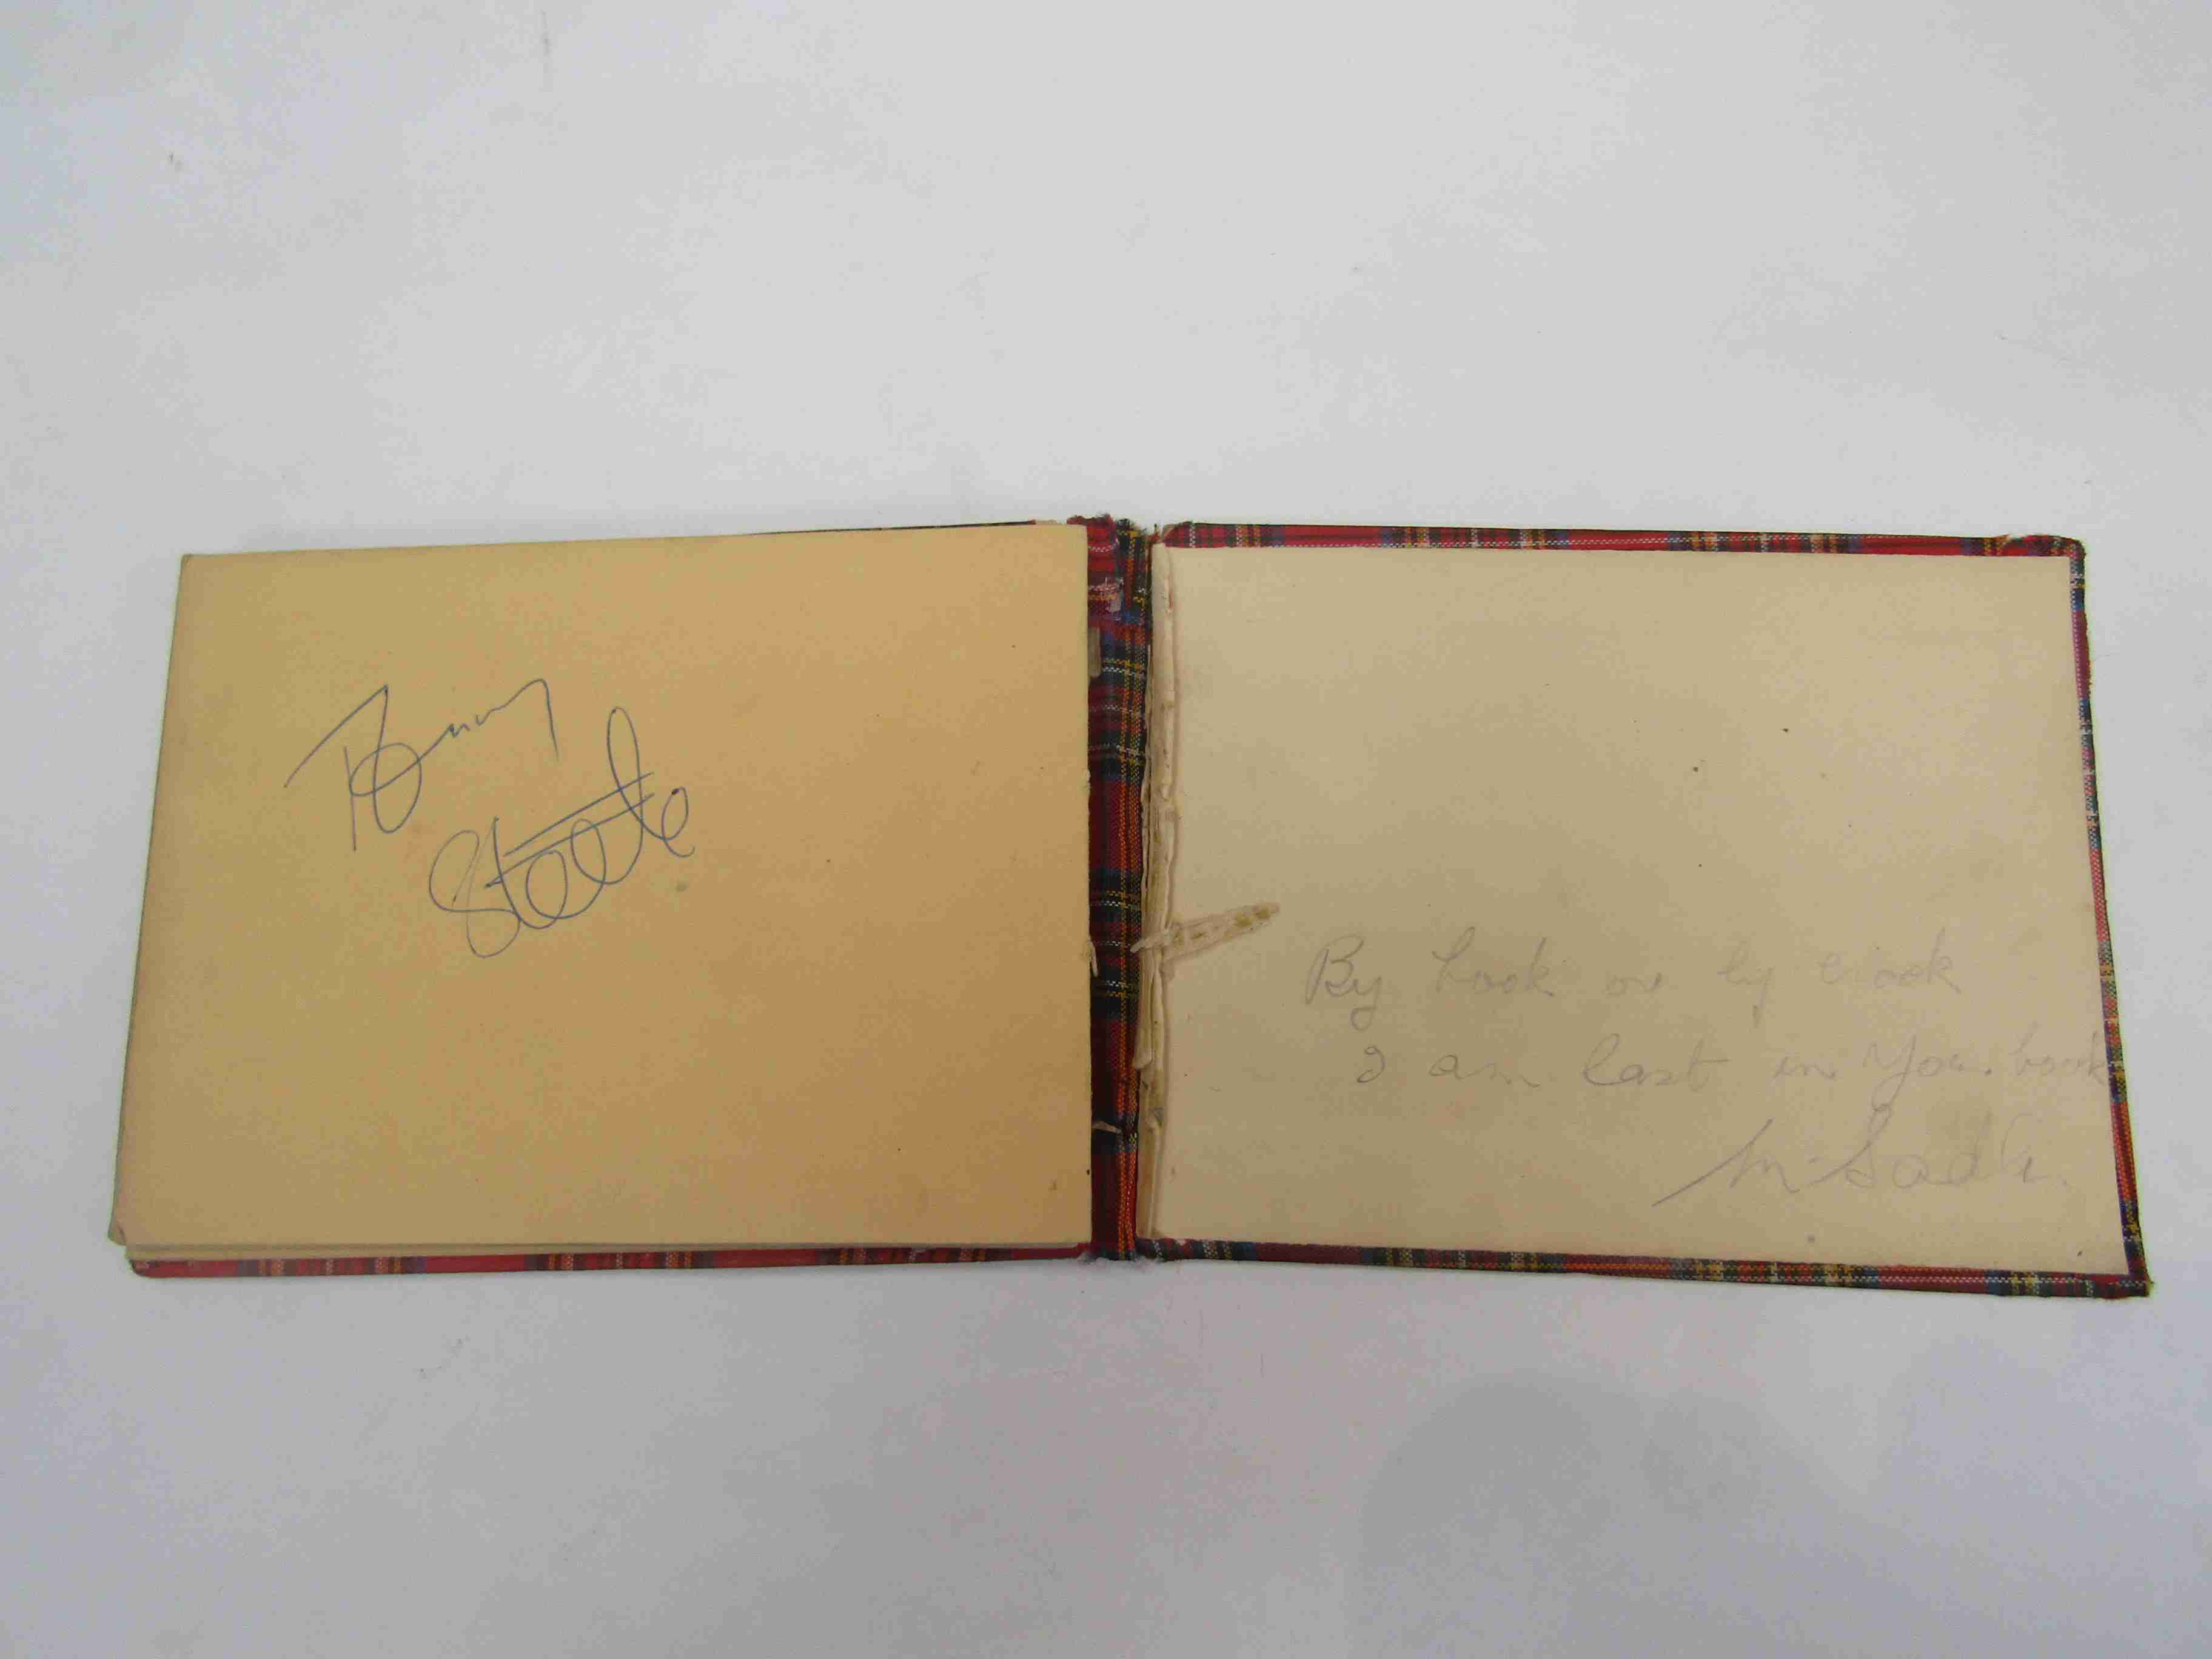 Two 1950s/60s autograph books containing autographs by Benny Hill, Honor Blackman, Barbara Shelley, - Image 34 of 34